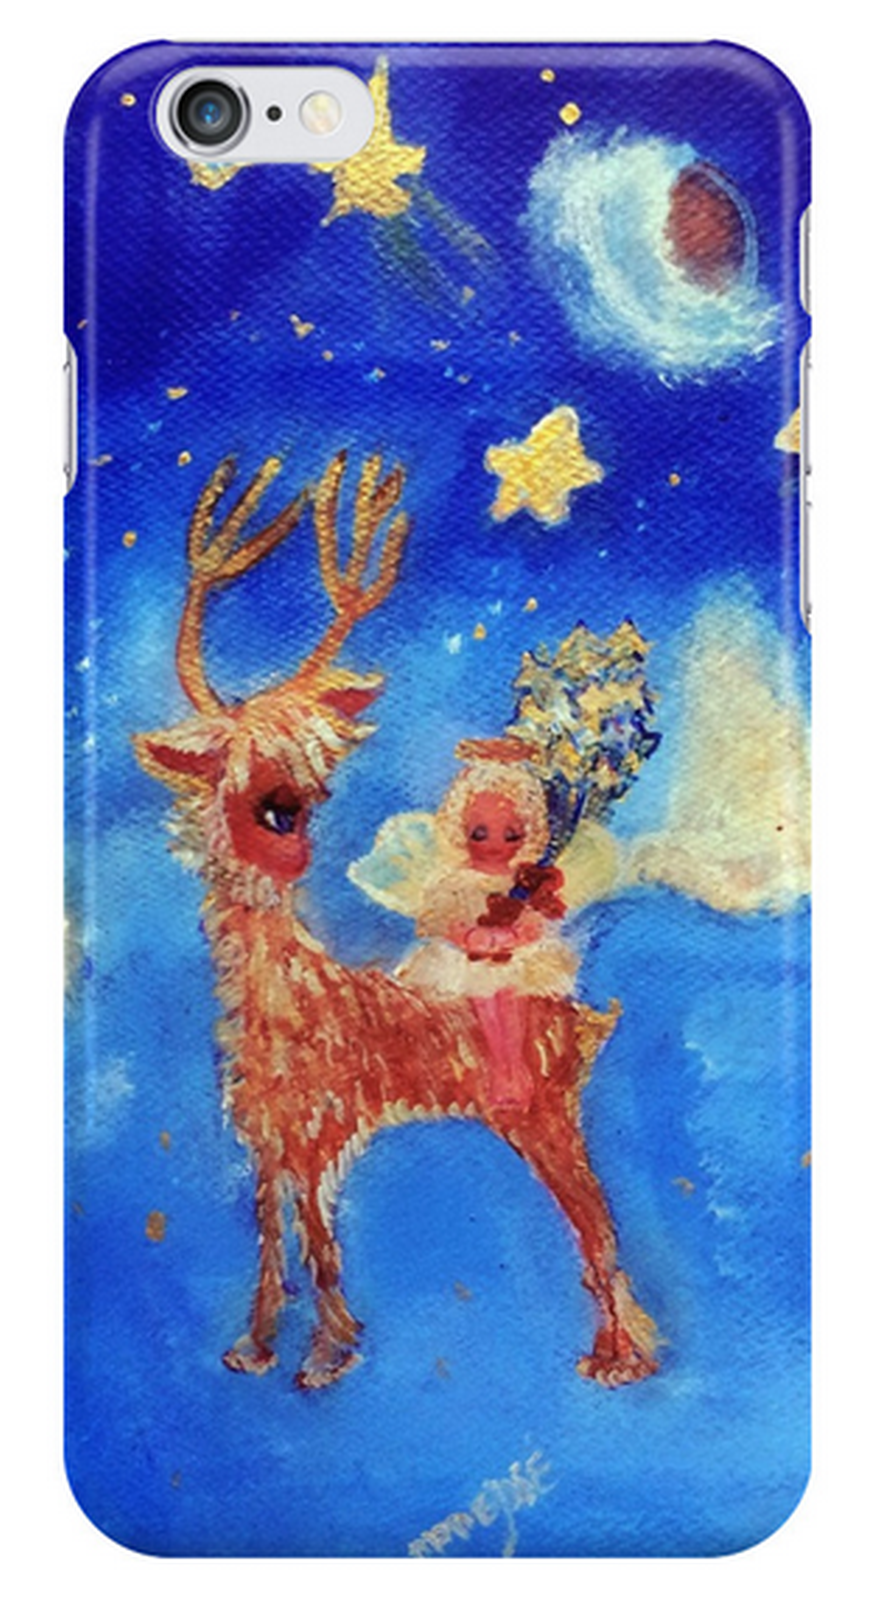 New! Stunning iPhone Case Covers - Top Picks designed by artist and designer Marie-Jose Pappas of Innocent Originals. Little Angel on the Reindeer Designer Art Gifts.